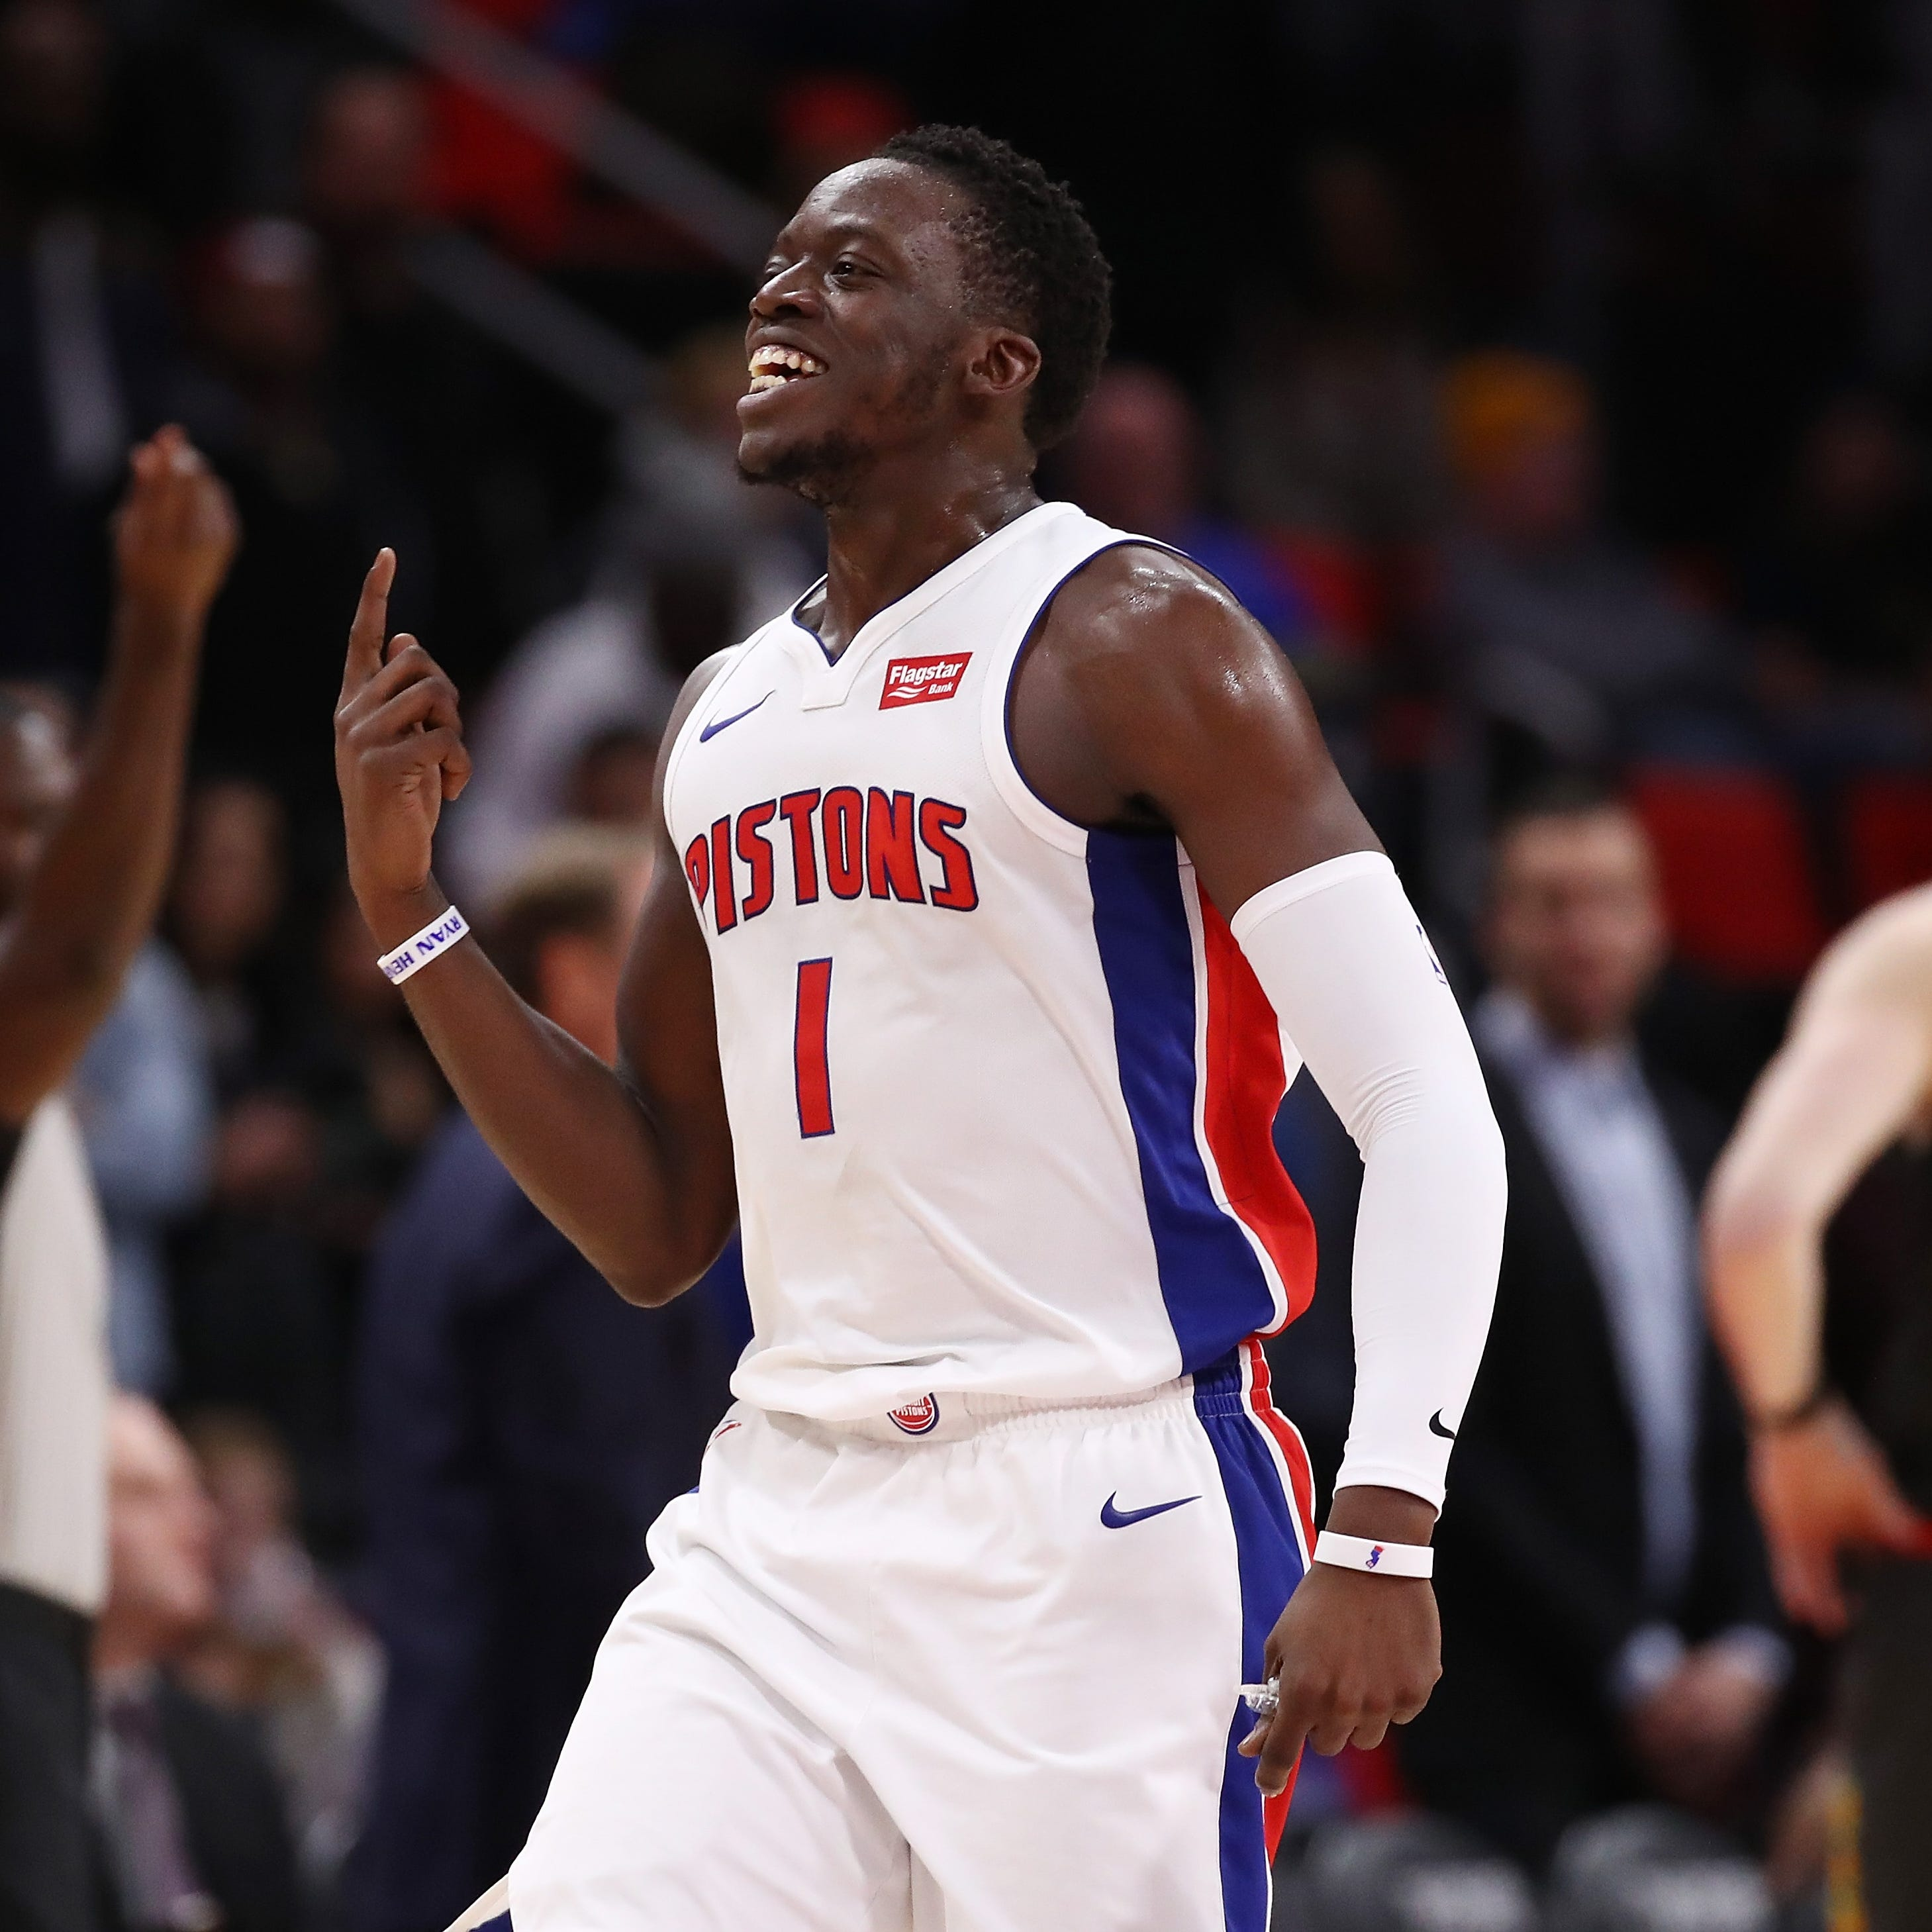 Full Pistons schedule: They open at home vs. Nets